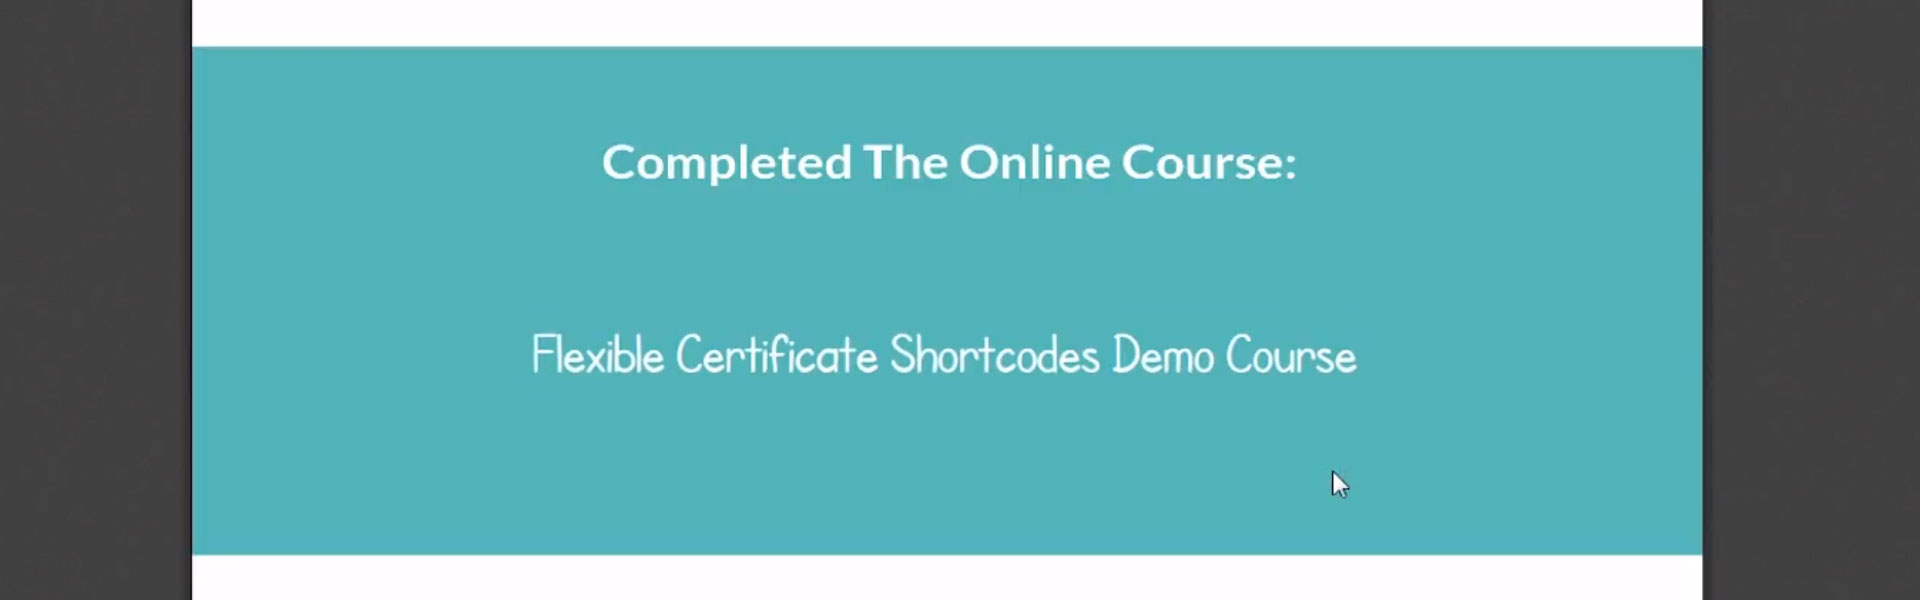 How To Add Custom Fonts To Your LearnDash LMS Certificates